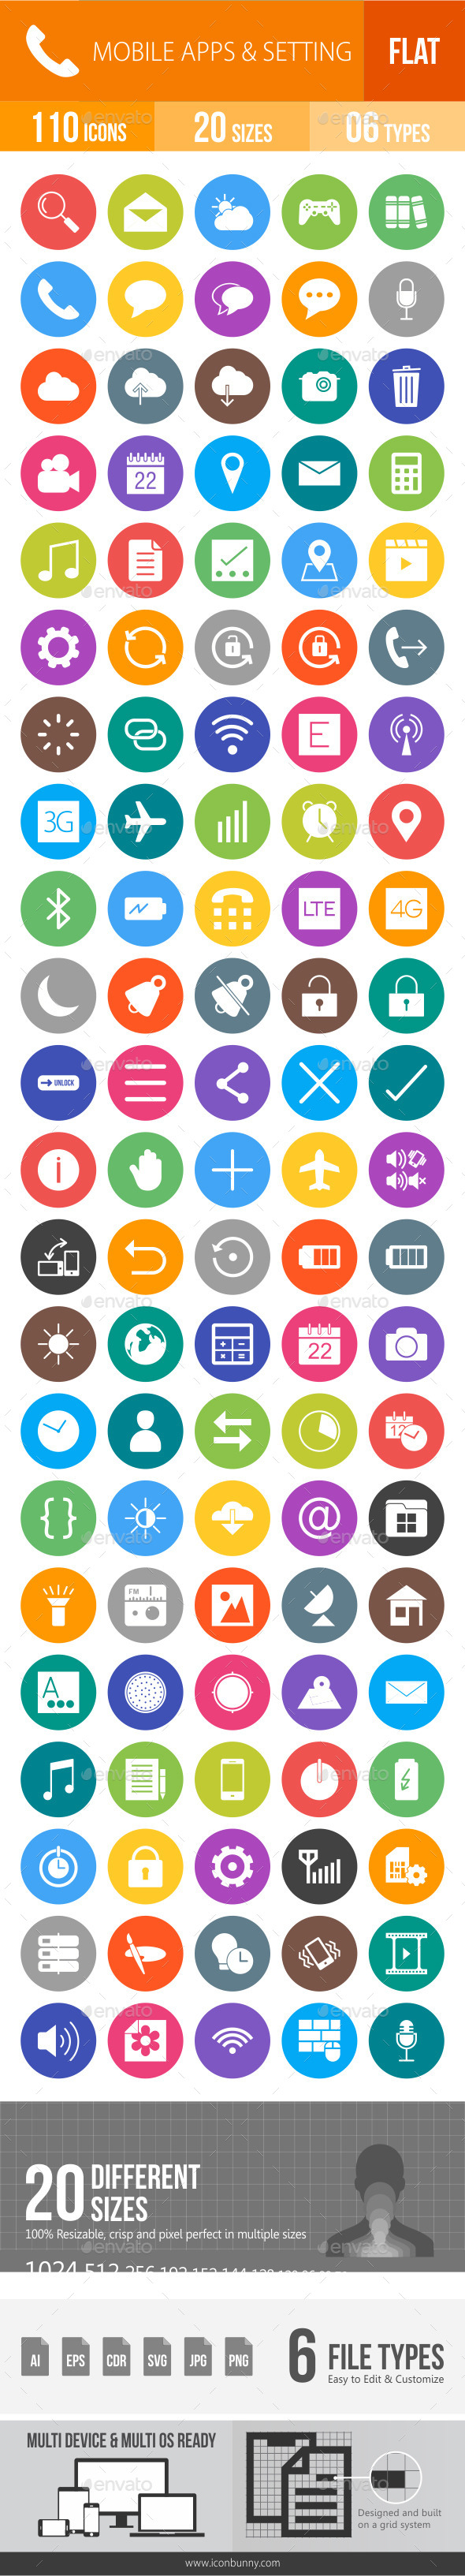 Mobile Apps & Settings Flat Round Icons - Icons